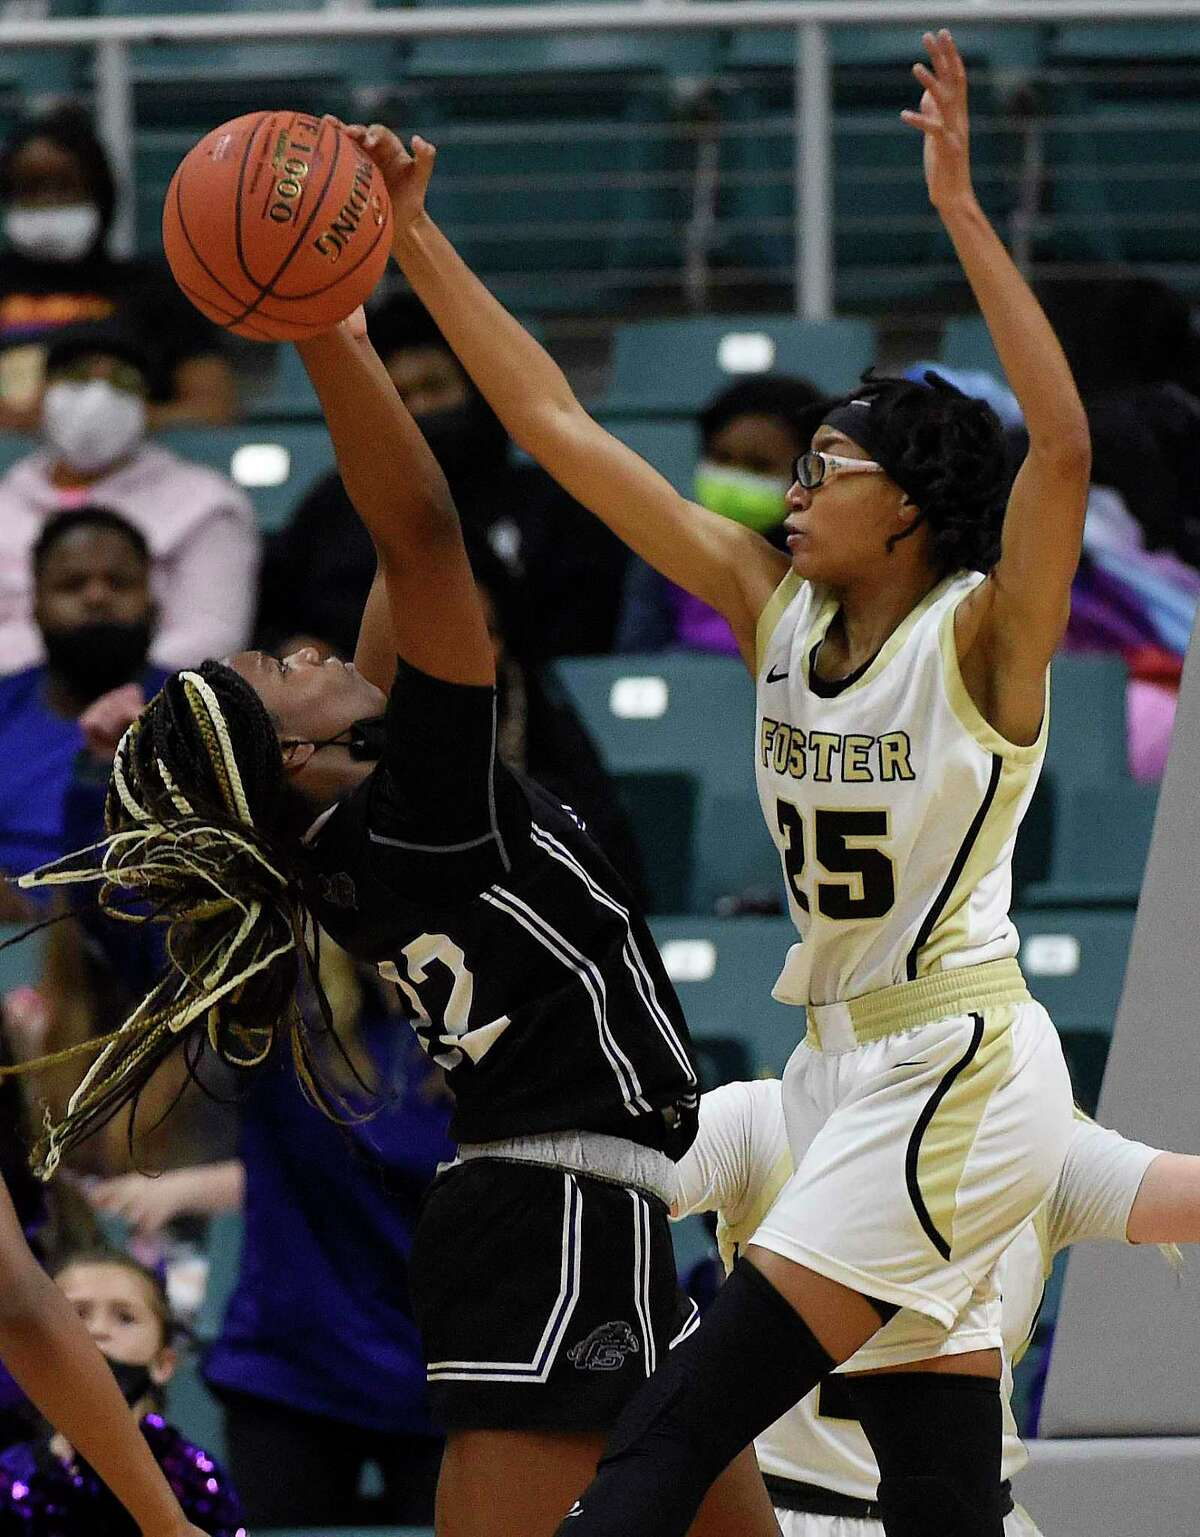 Foster's Imani Avery, right, blocks the shot of College Station's Jayden Davenport during the second half of a 5A Region III semifinal high school basketball playoff game, Friday, Feb. 26, 2021, in Katy, TX.